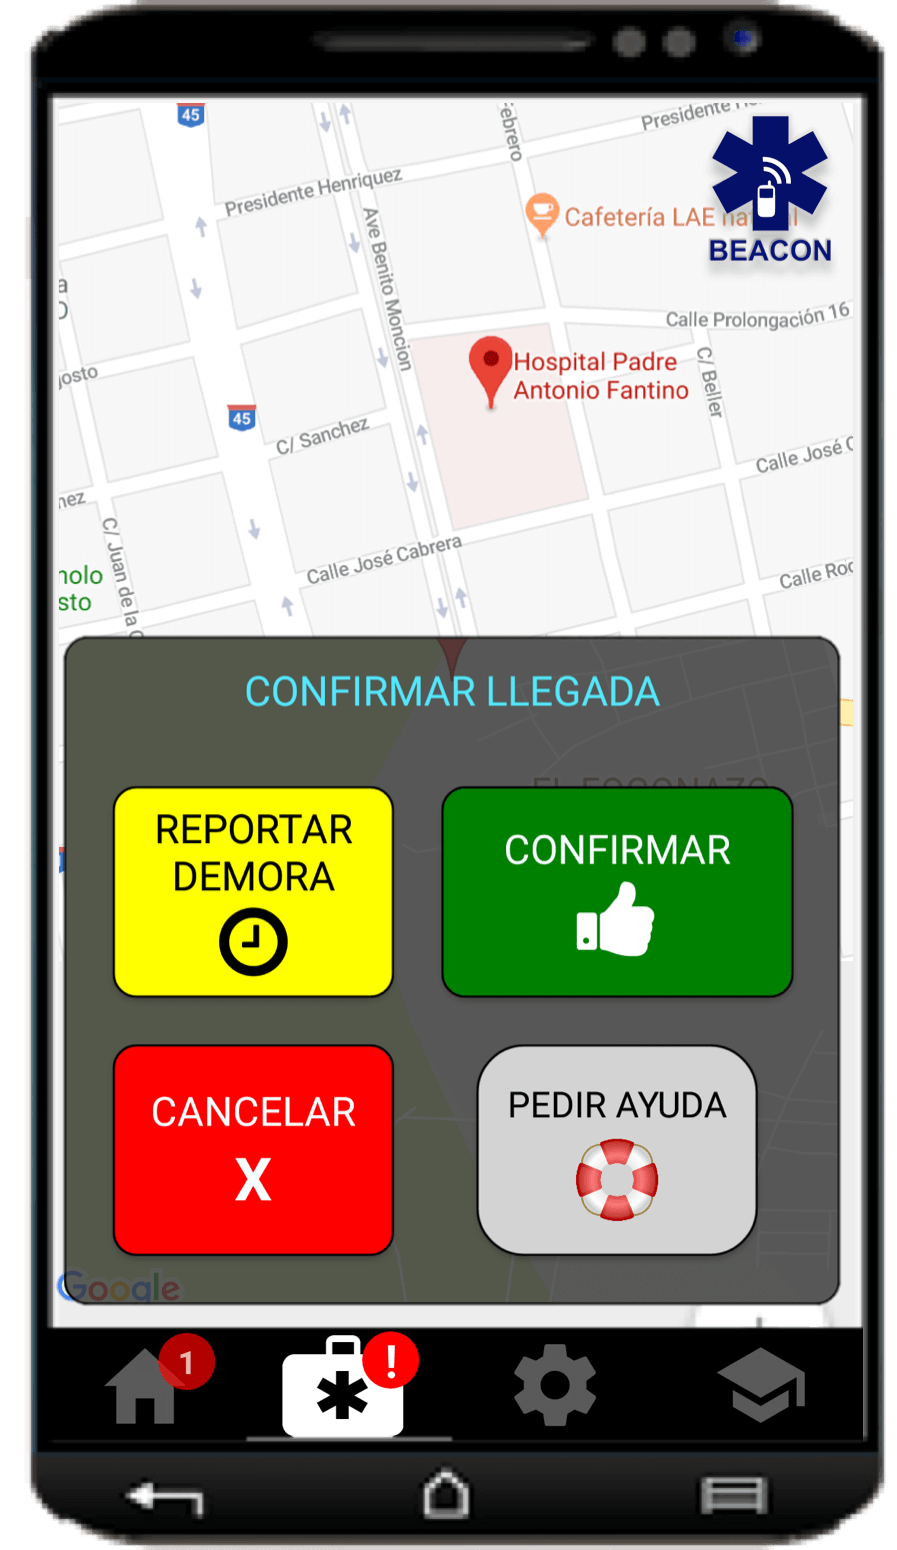 beacon-despacho-de-emergencia_05_confirmar-llegada-al-hospital_android_esp